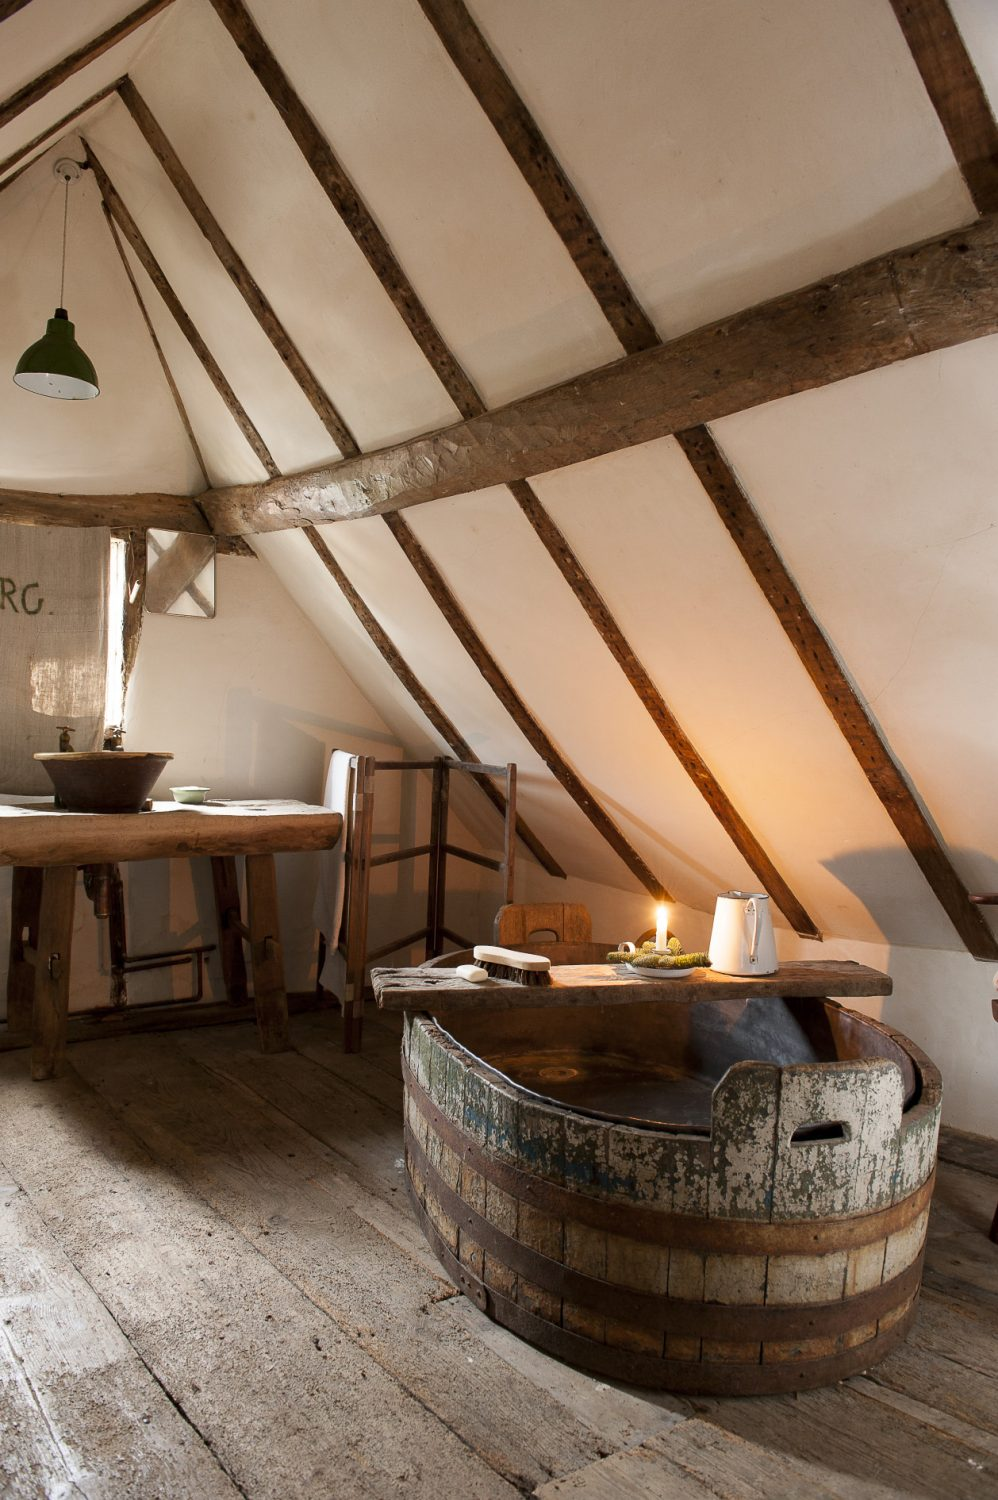 Next to the attic bedroom, a large bathroom features an original bathtub lined with lead. Its sheer weight meant that the floor had to be reinforced in order to safely support it